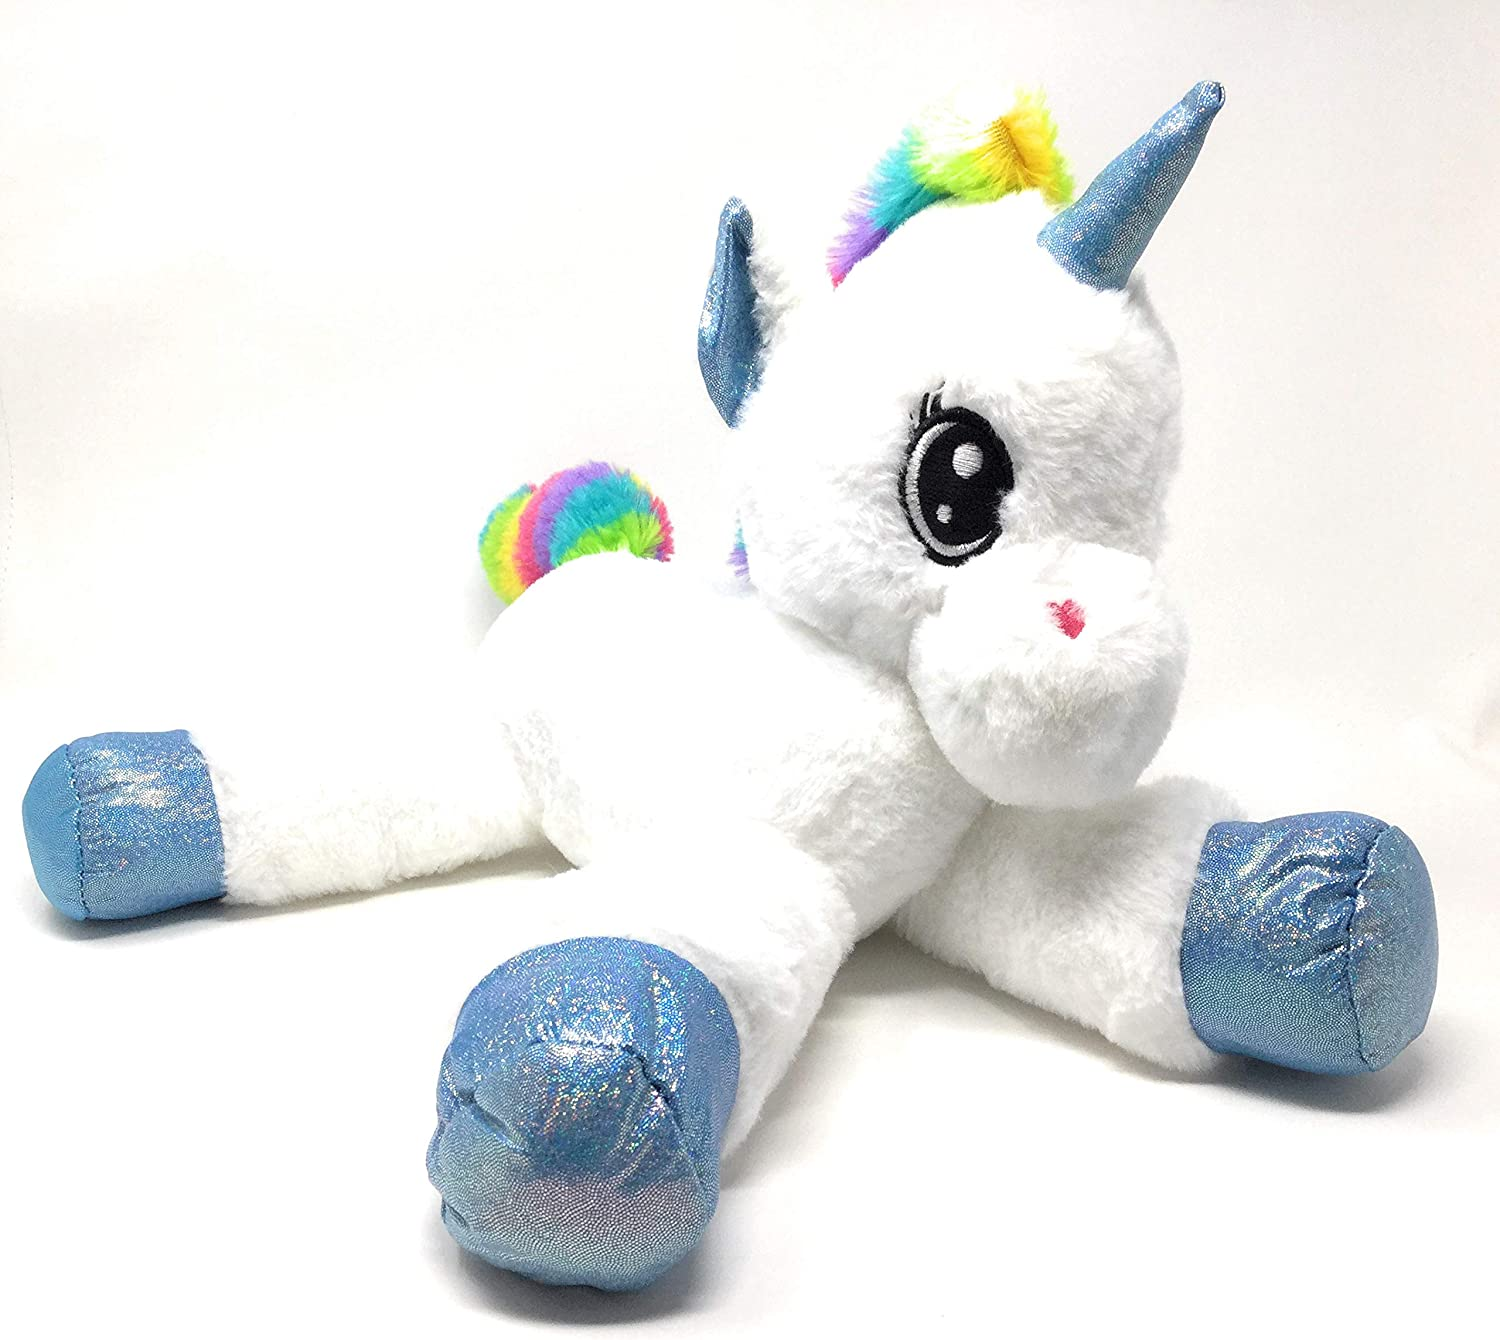 Gitzy - Extra Soft, Adorable 17  Large Laying Plush Unicorn - White Body, Sparkly bluee Horn & Hooves with Rainbow Mane and Tail.